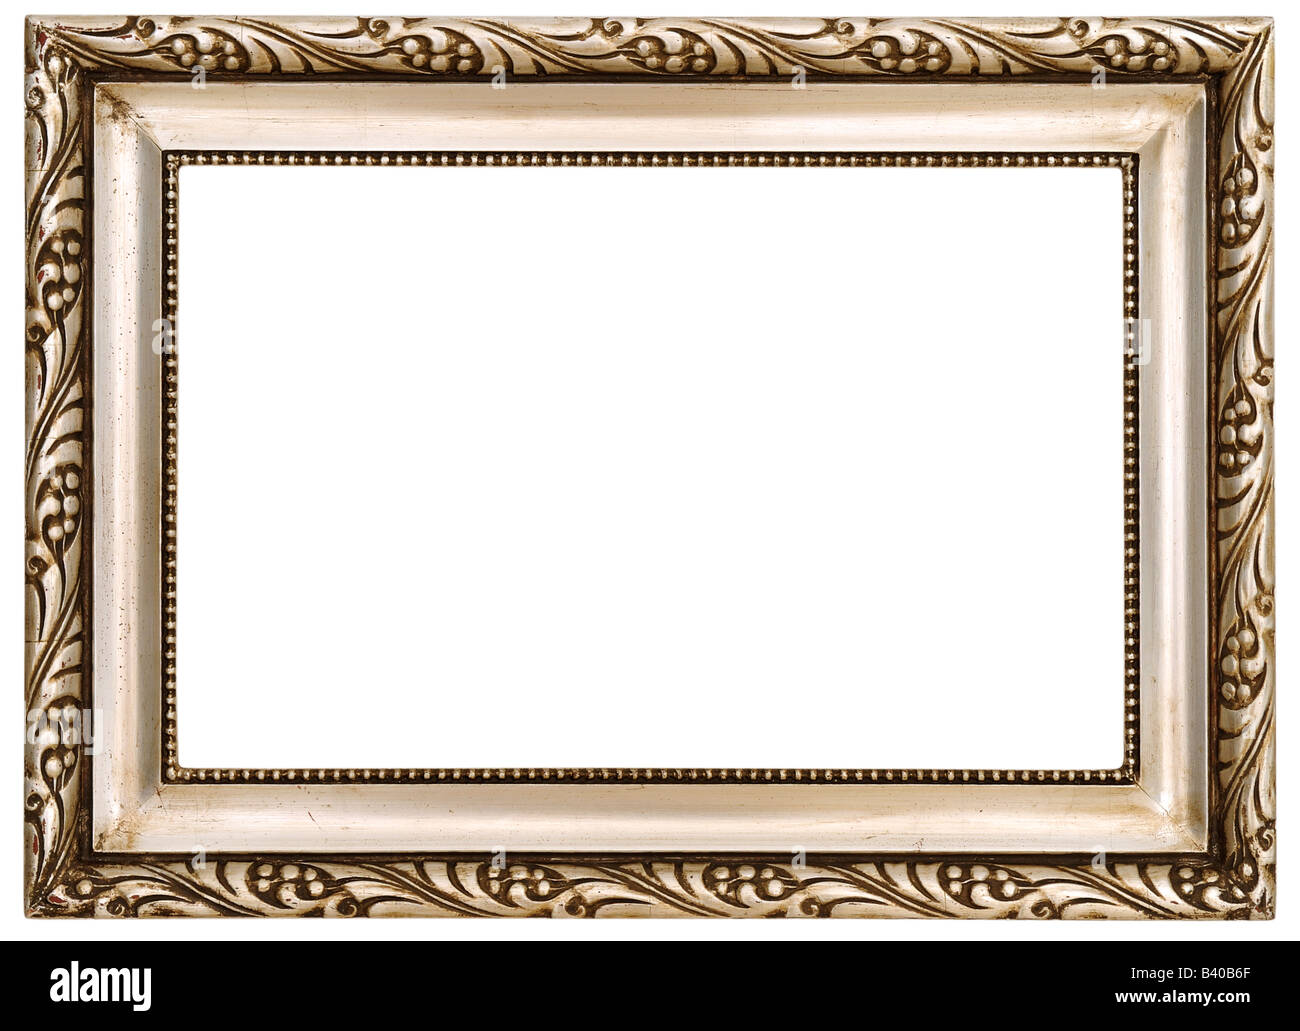 Silve Stockfotos & Silve Bilder - Alamy